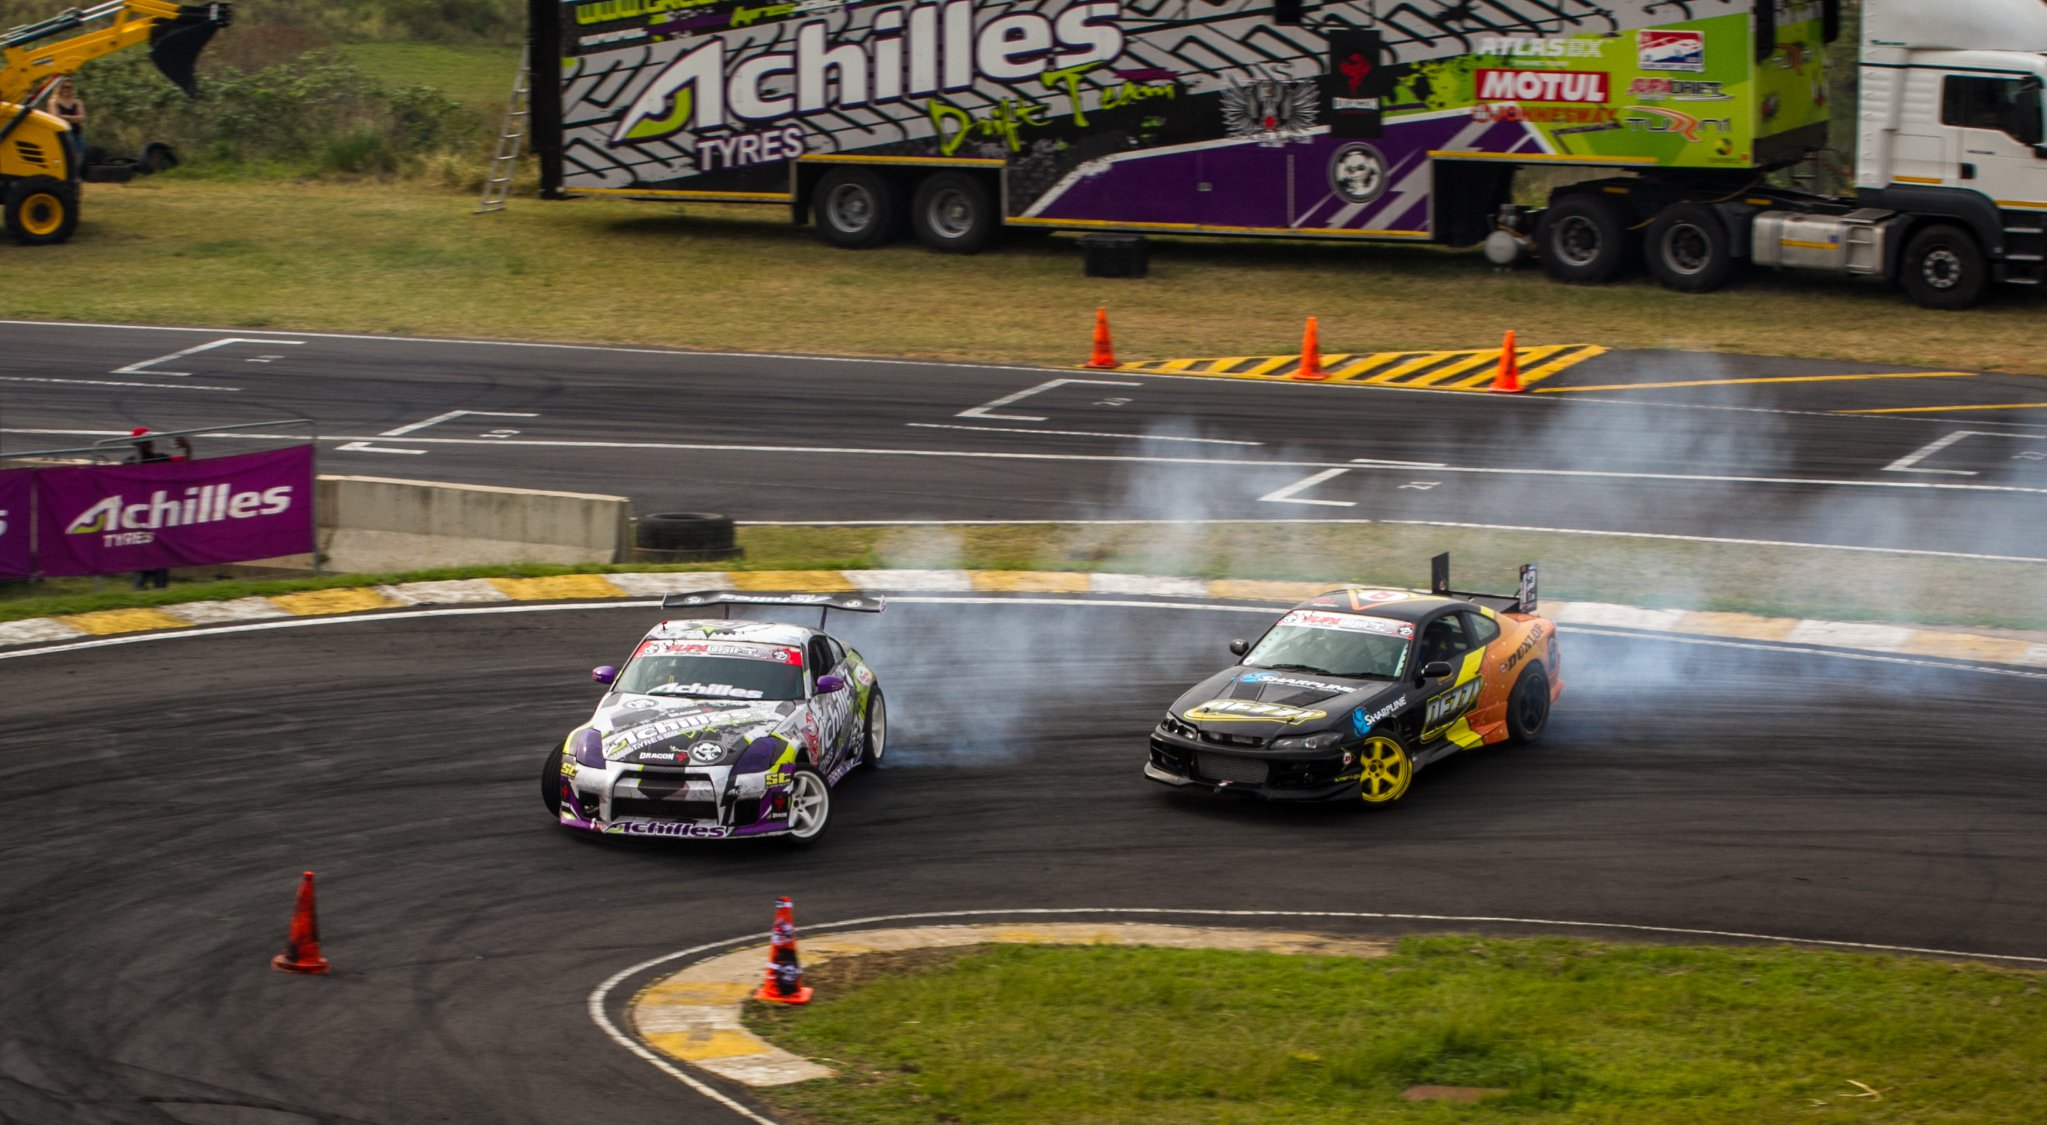 Round 5 of the 2018 SupaDrift Series providing exciting drifting action